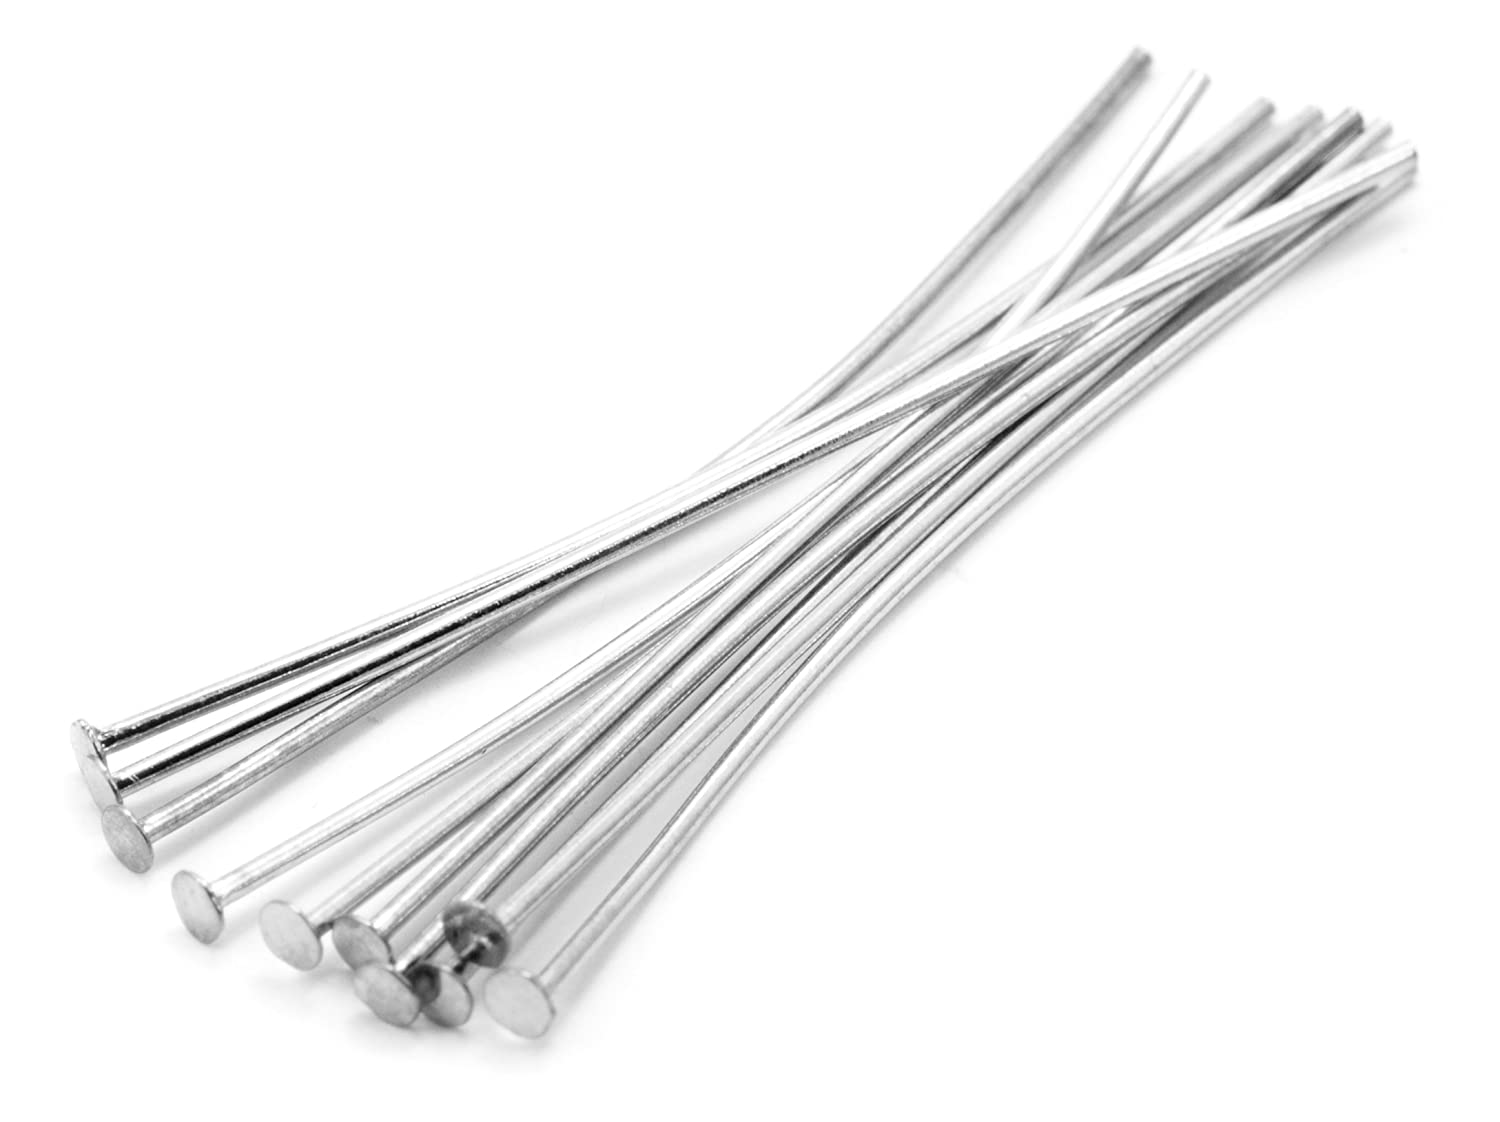 Cousin 35mm Sterling Pin-10pc Party Supplies, Flat End Head Pin, Silver, 3 Pieces Notions - In Network 2949437